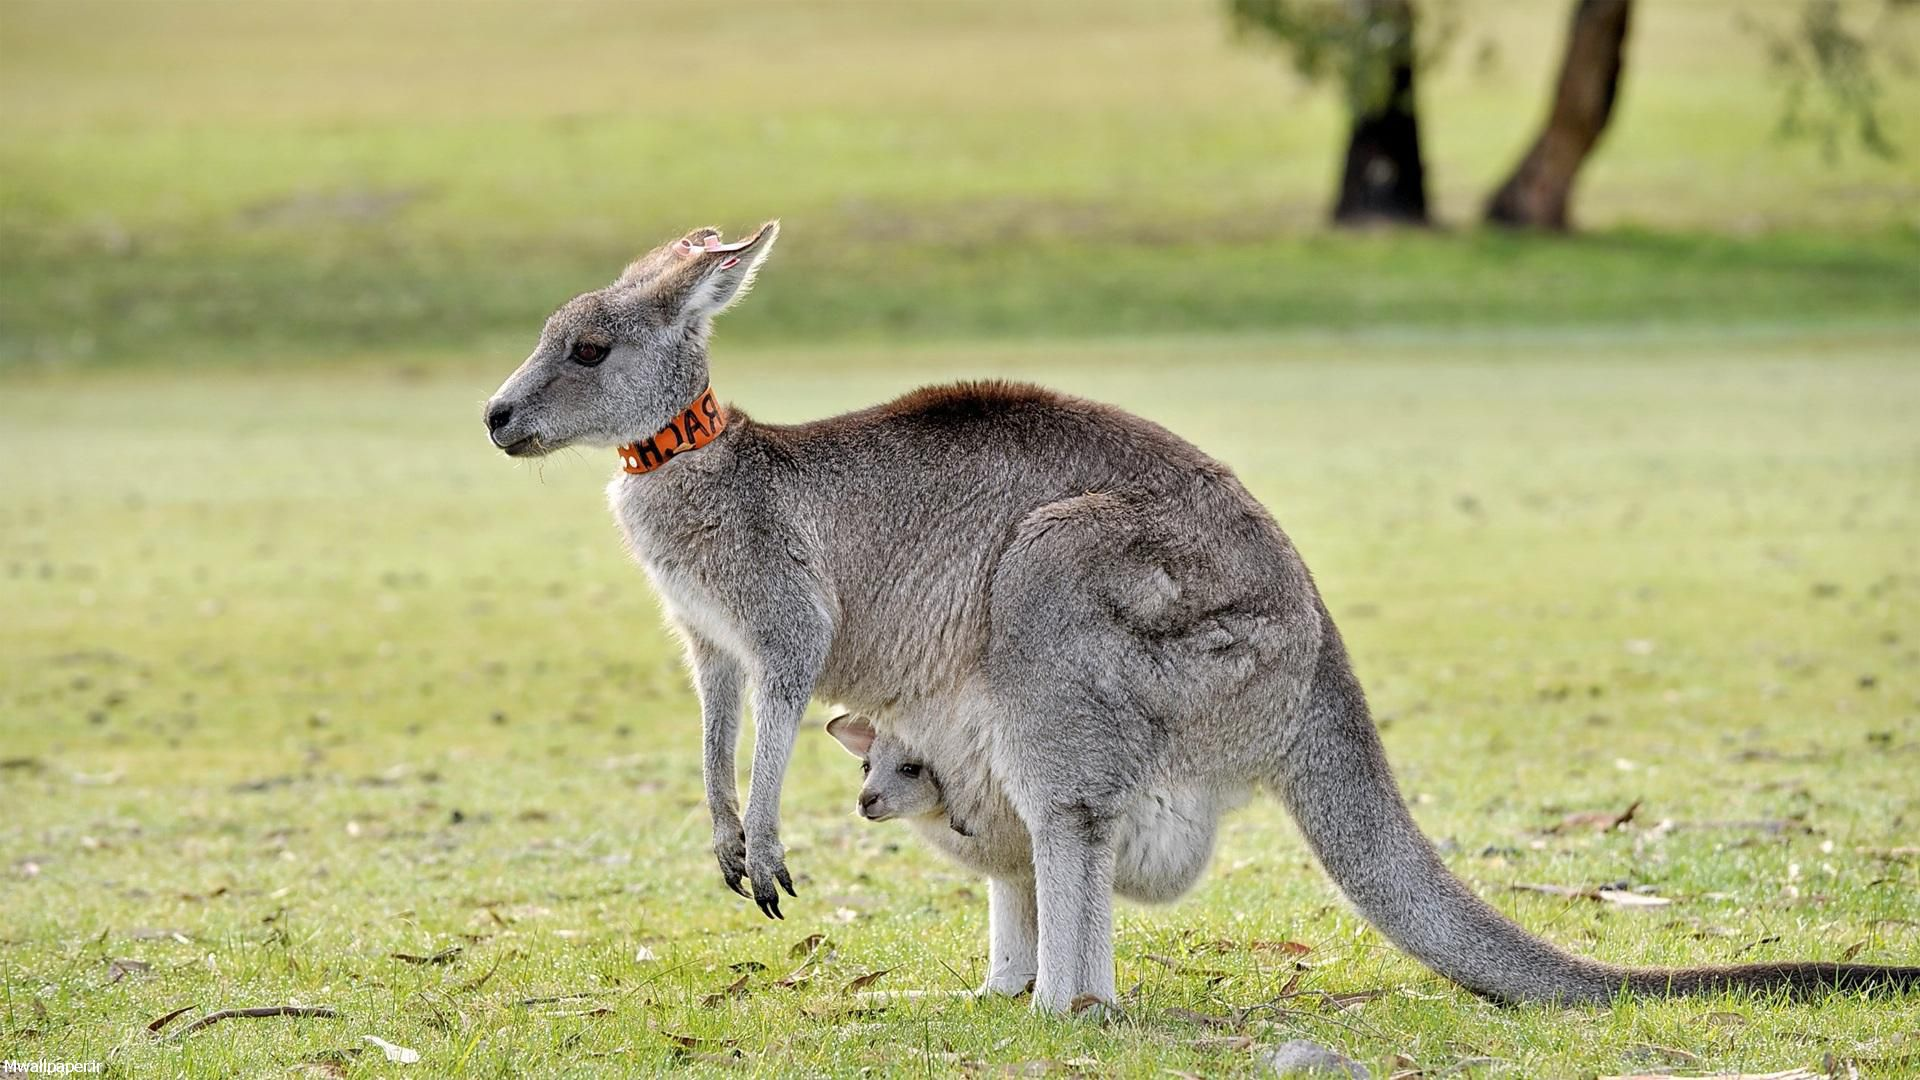 pictures of baby kangaroos